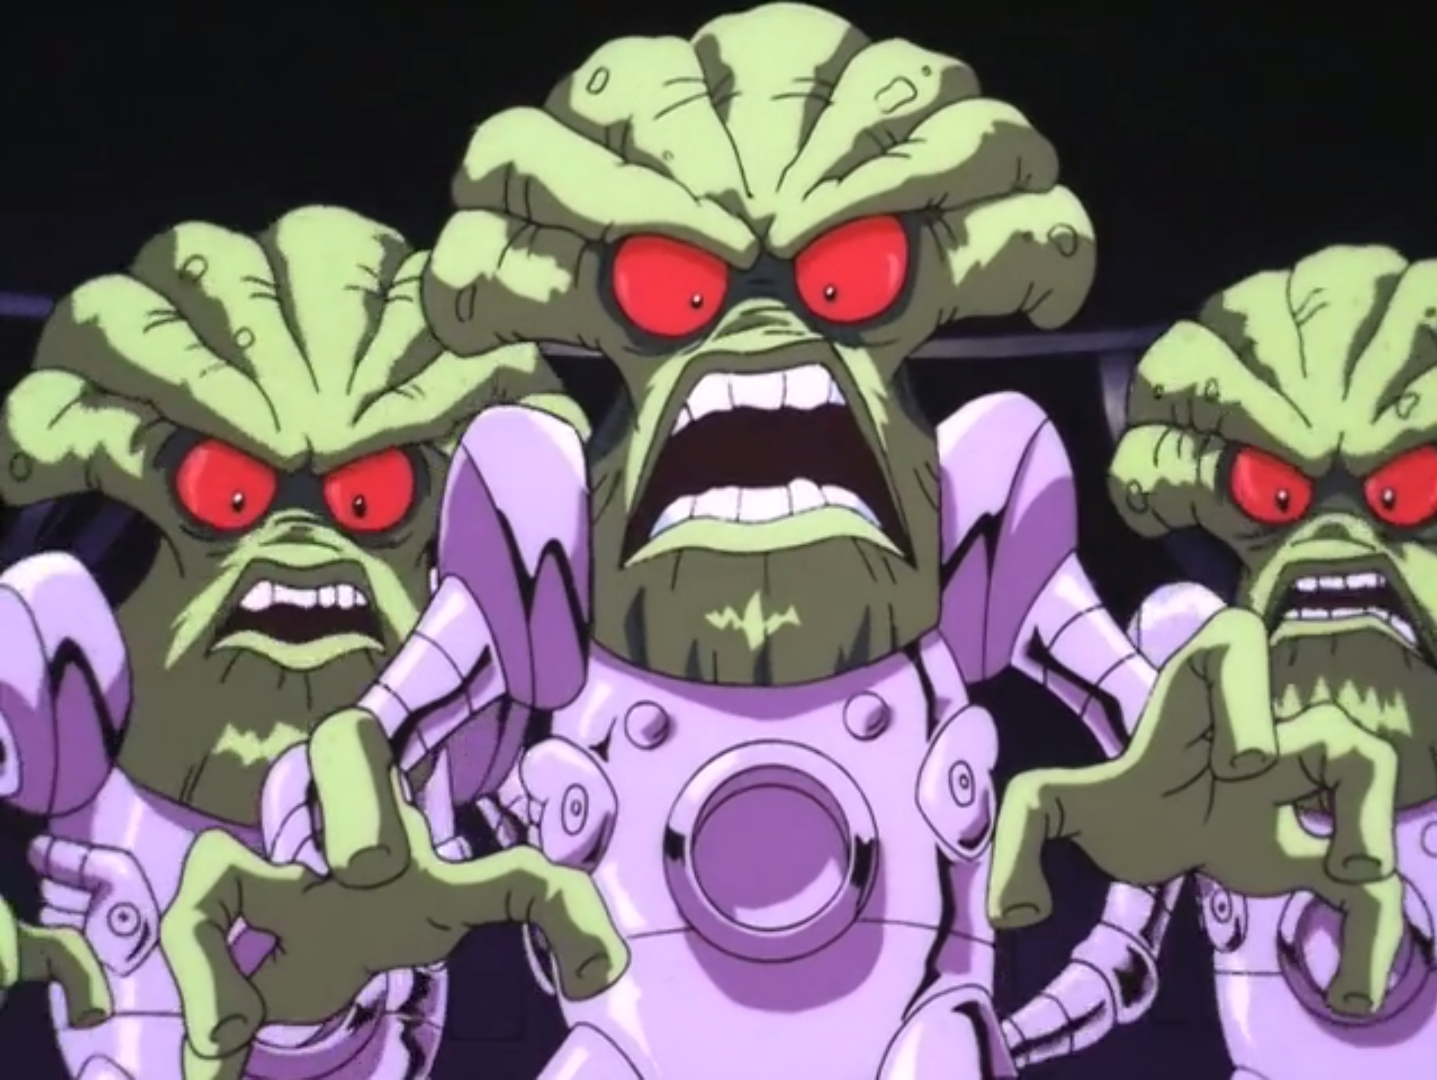 Three aliens from the film Scooby-Doo and the Alien Invaders.